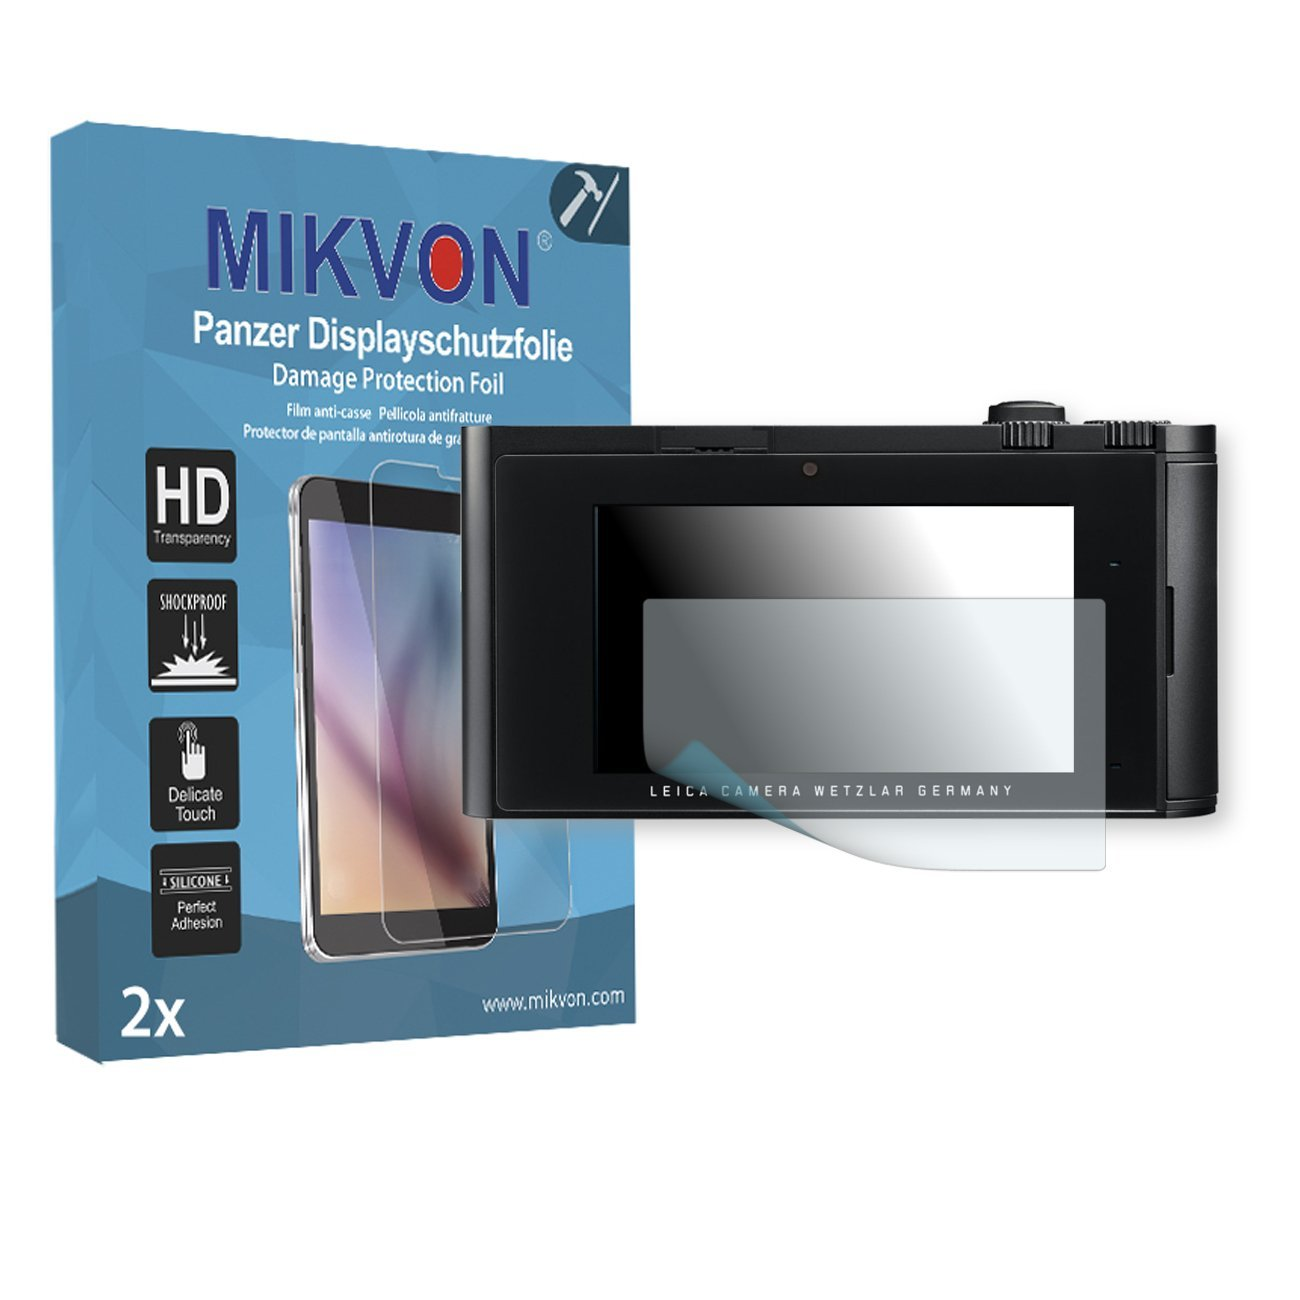 2x Mikvon Armor Screen Protector for Leica T screen fracture protection film - Retail Package with accessories